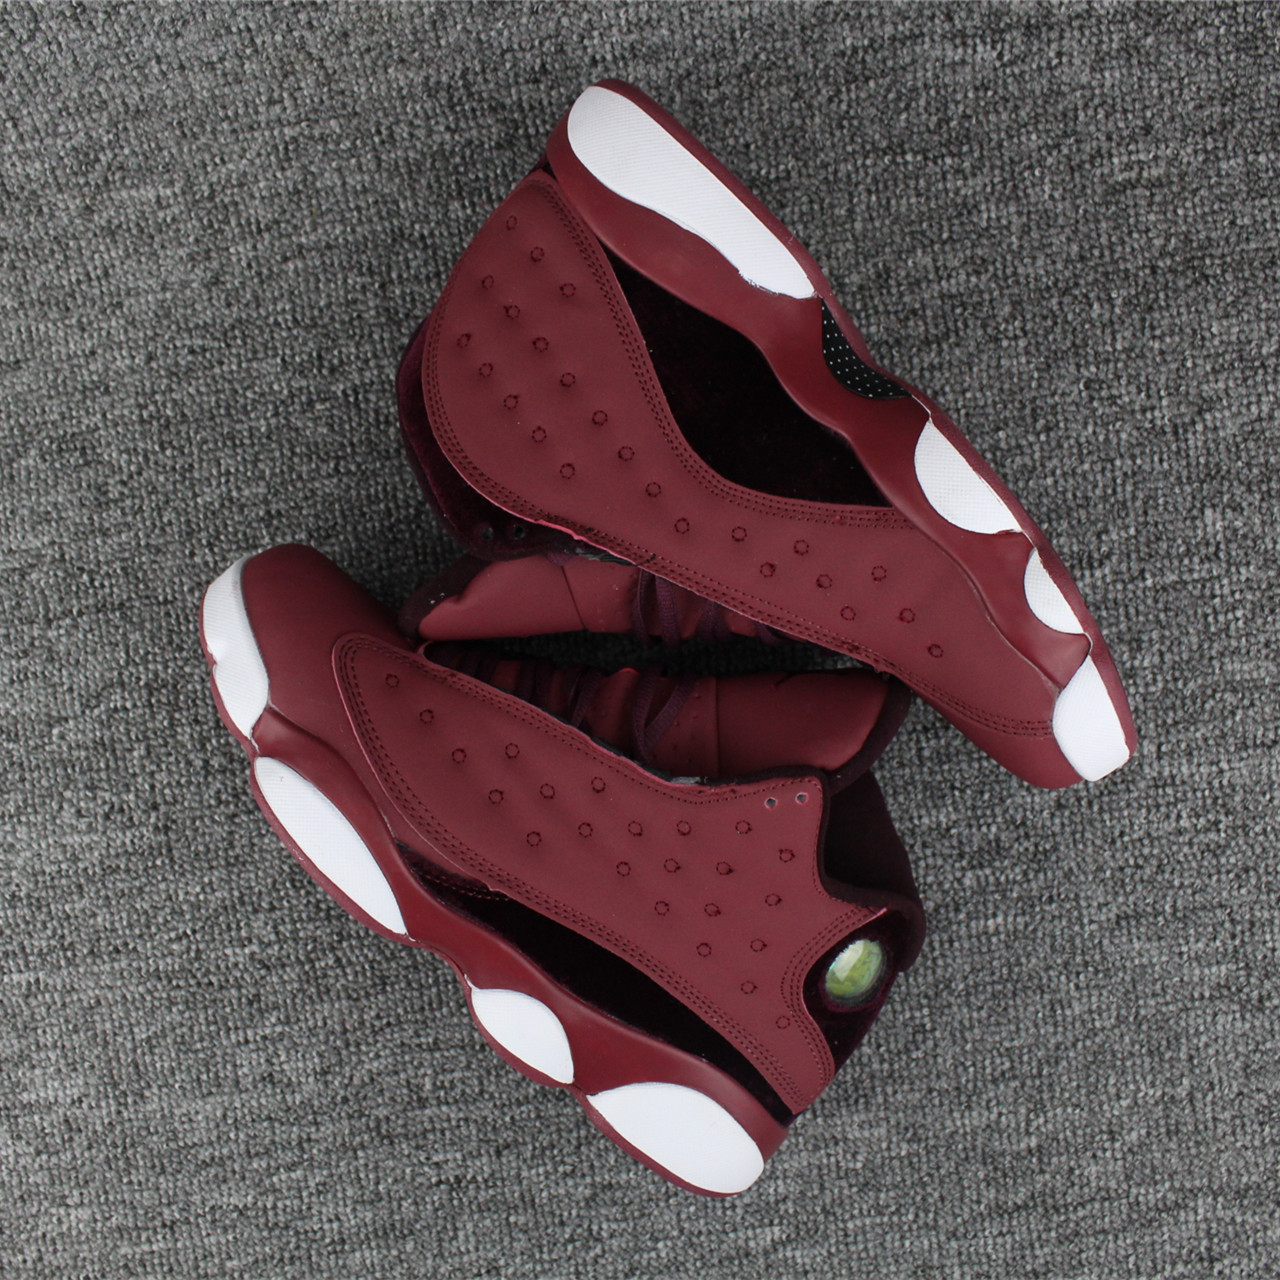 New Cheap 2018 Jordans 13 Wine Red Shoes